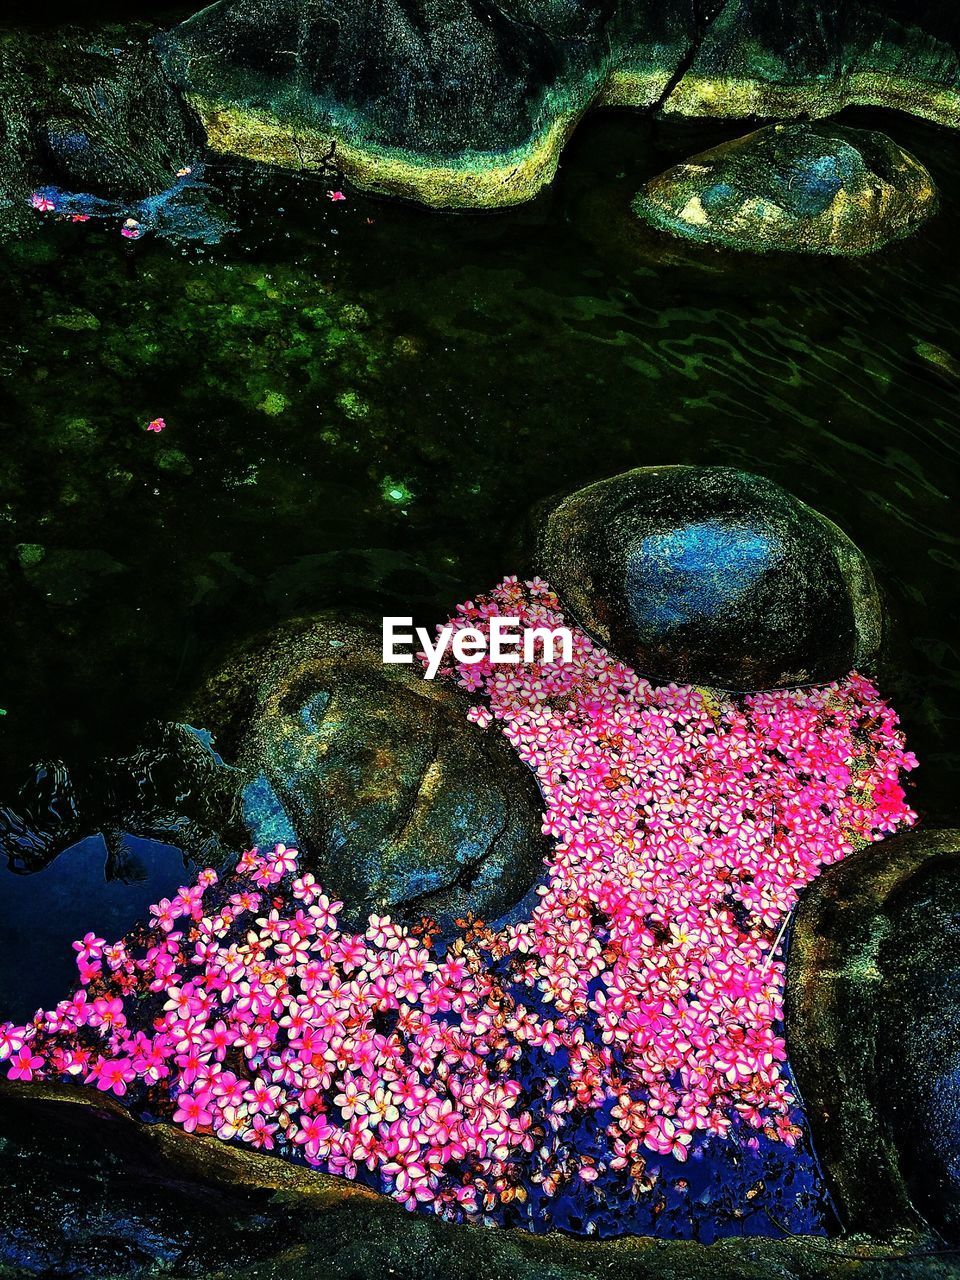 Flowers and stones in water